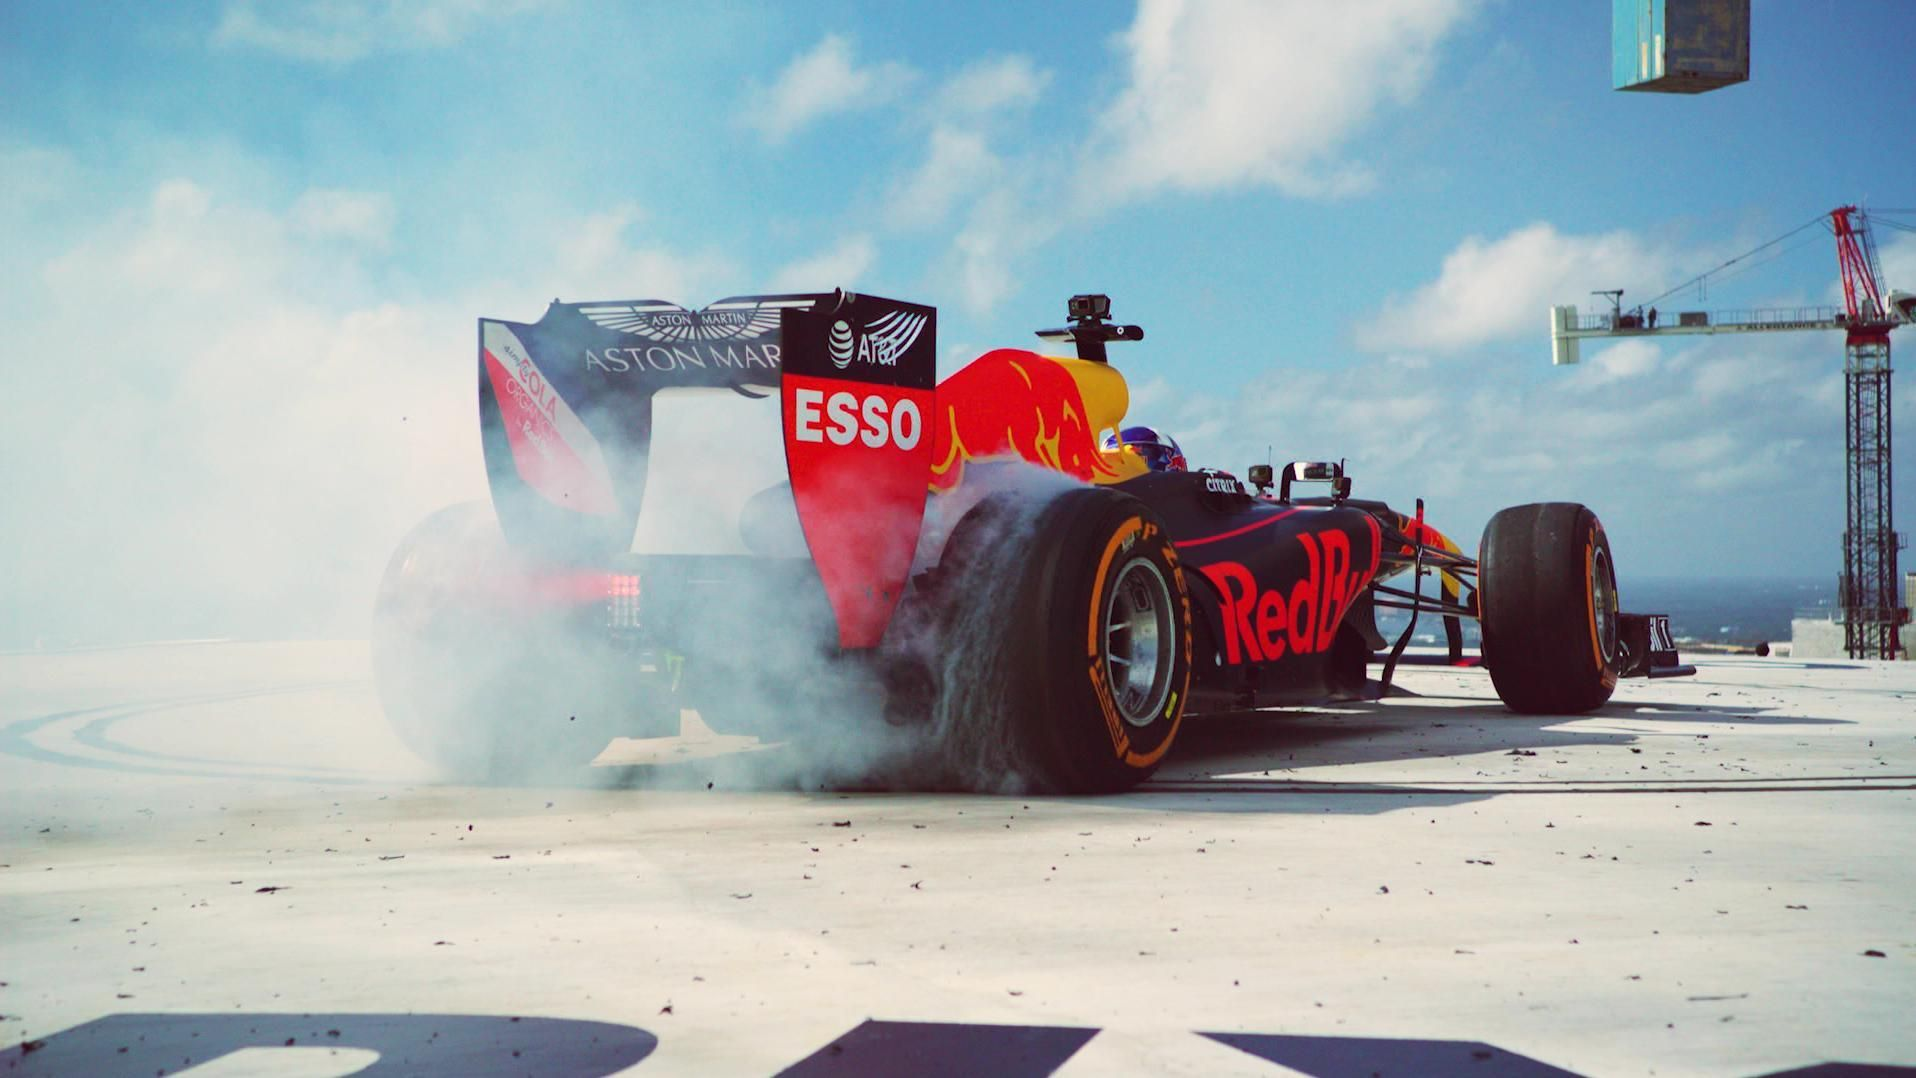 Red Bull F1 team reaches new heights with skyscraper burnout